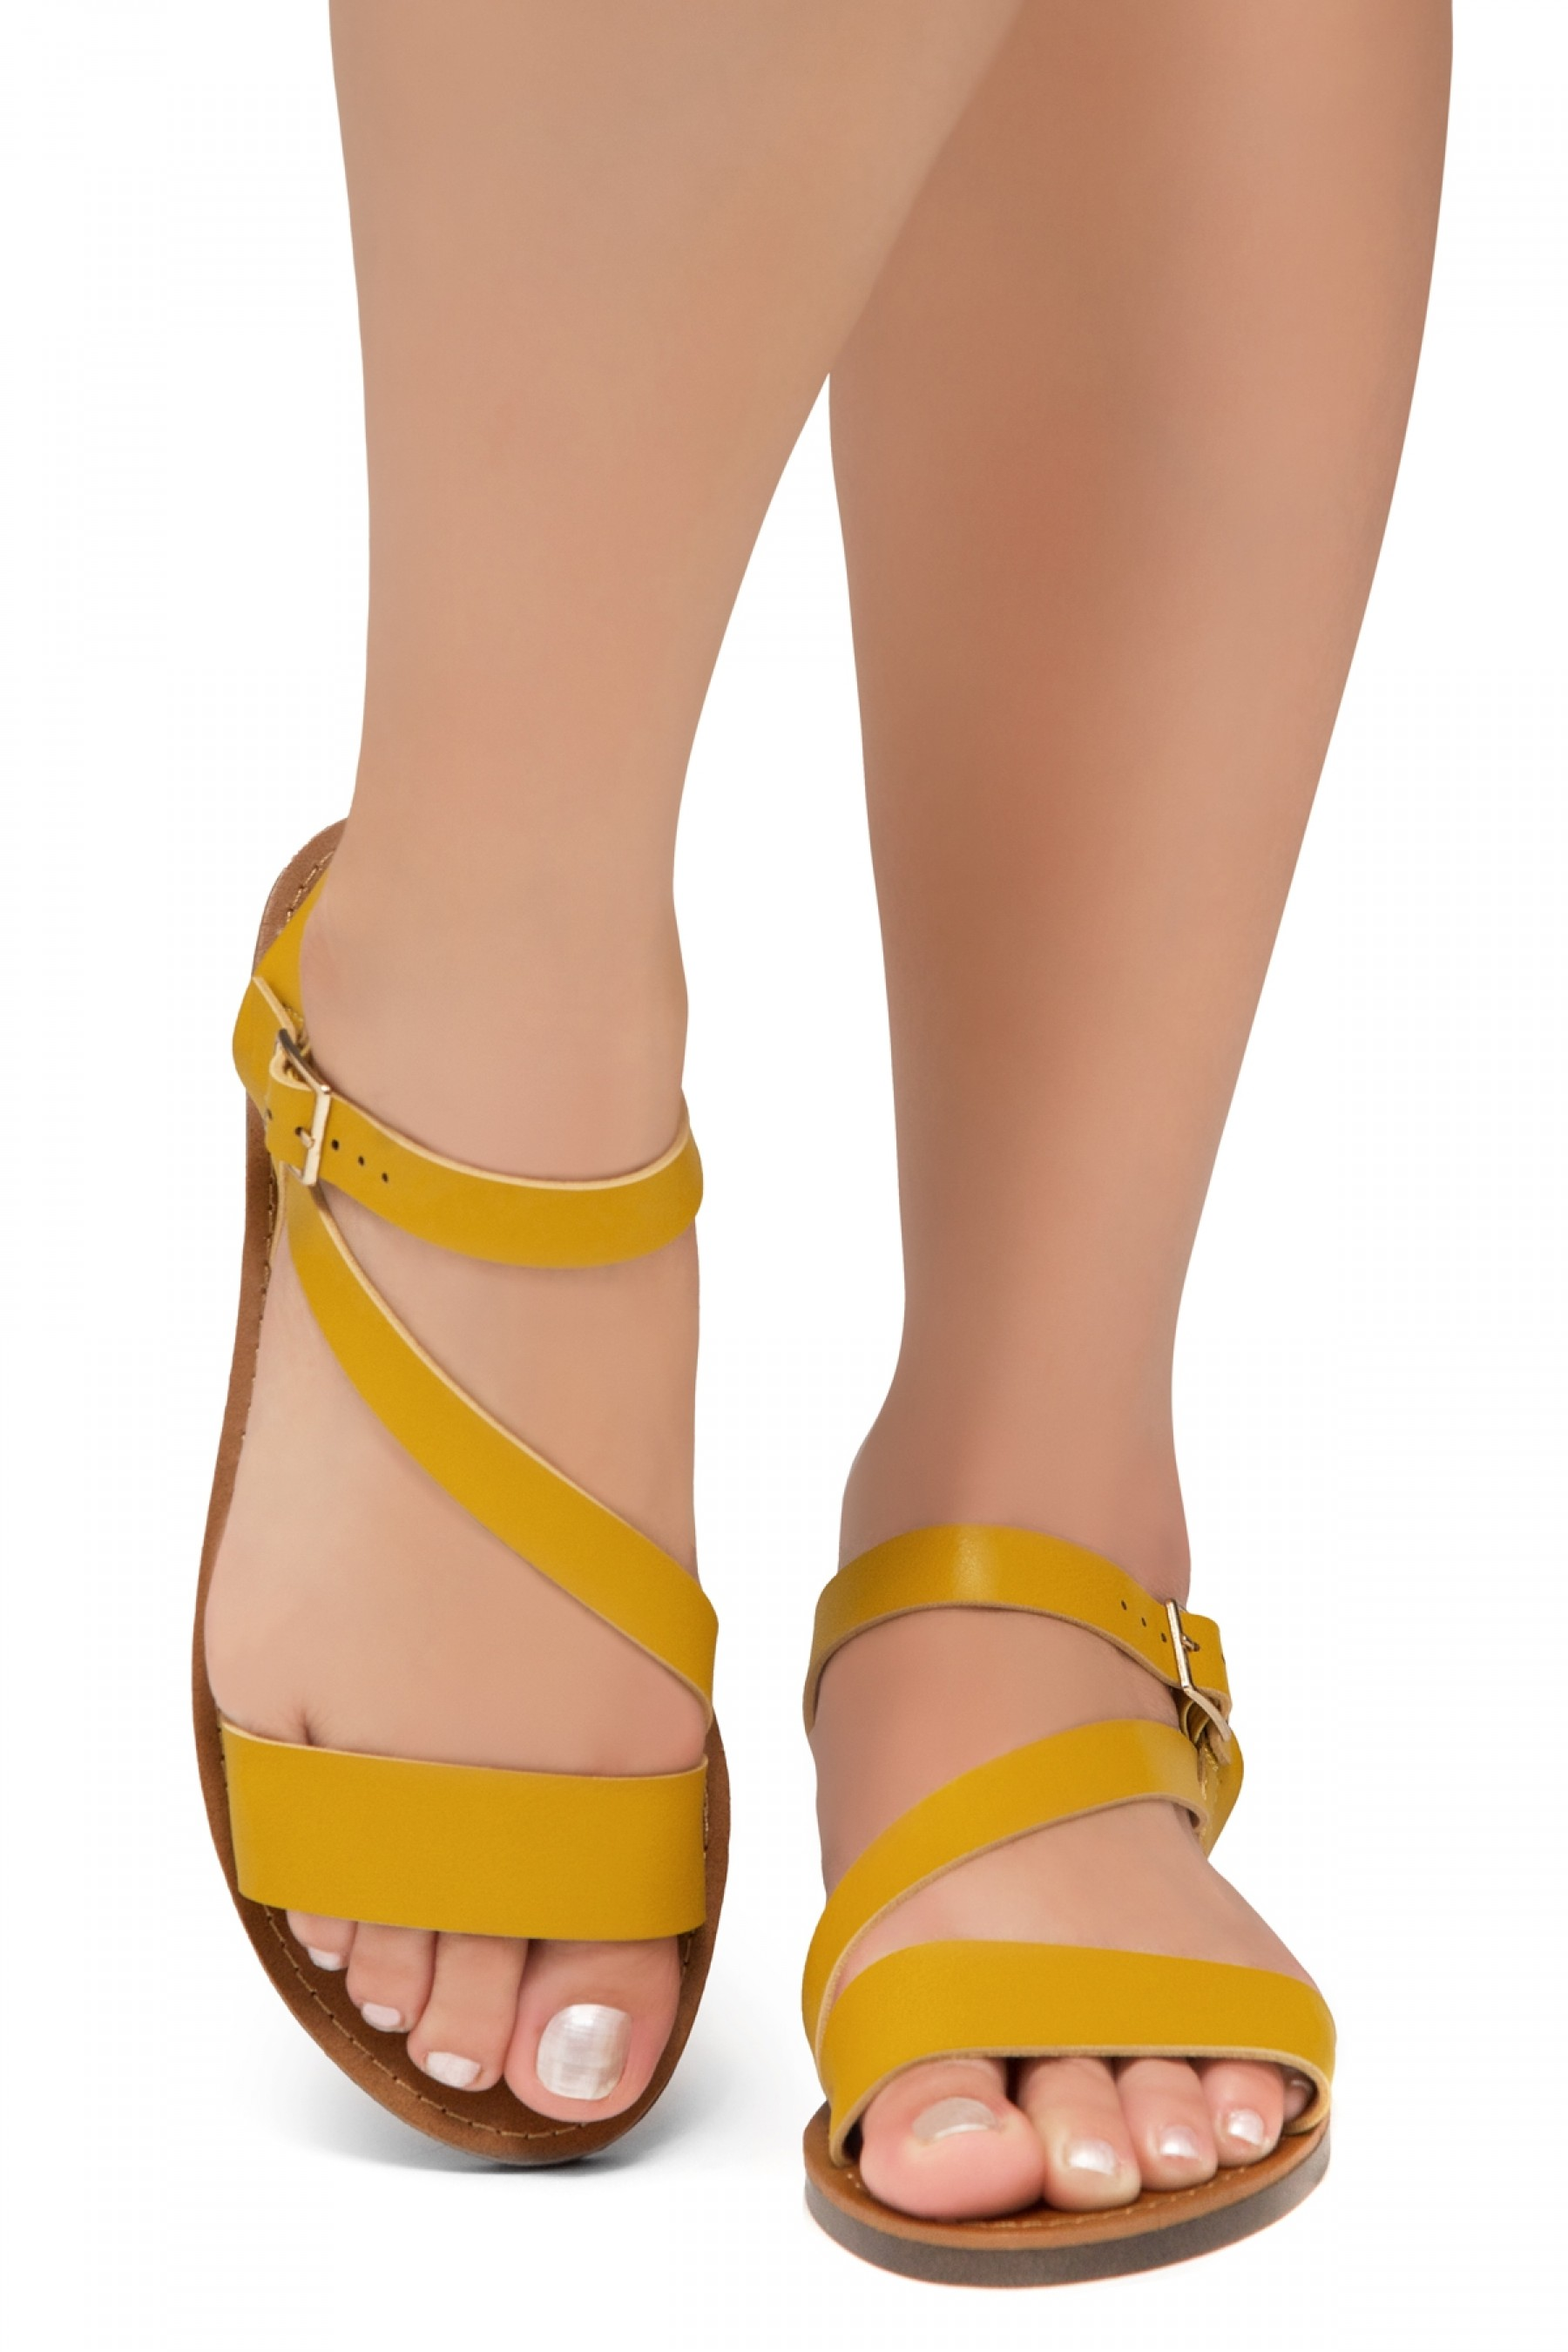 Shoe Land Merina- Lightweight Flat Sandal with Faux Leather Straps Sandals (Mustard)